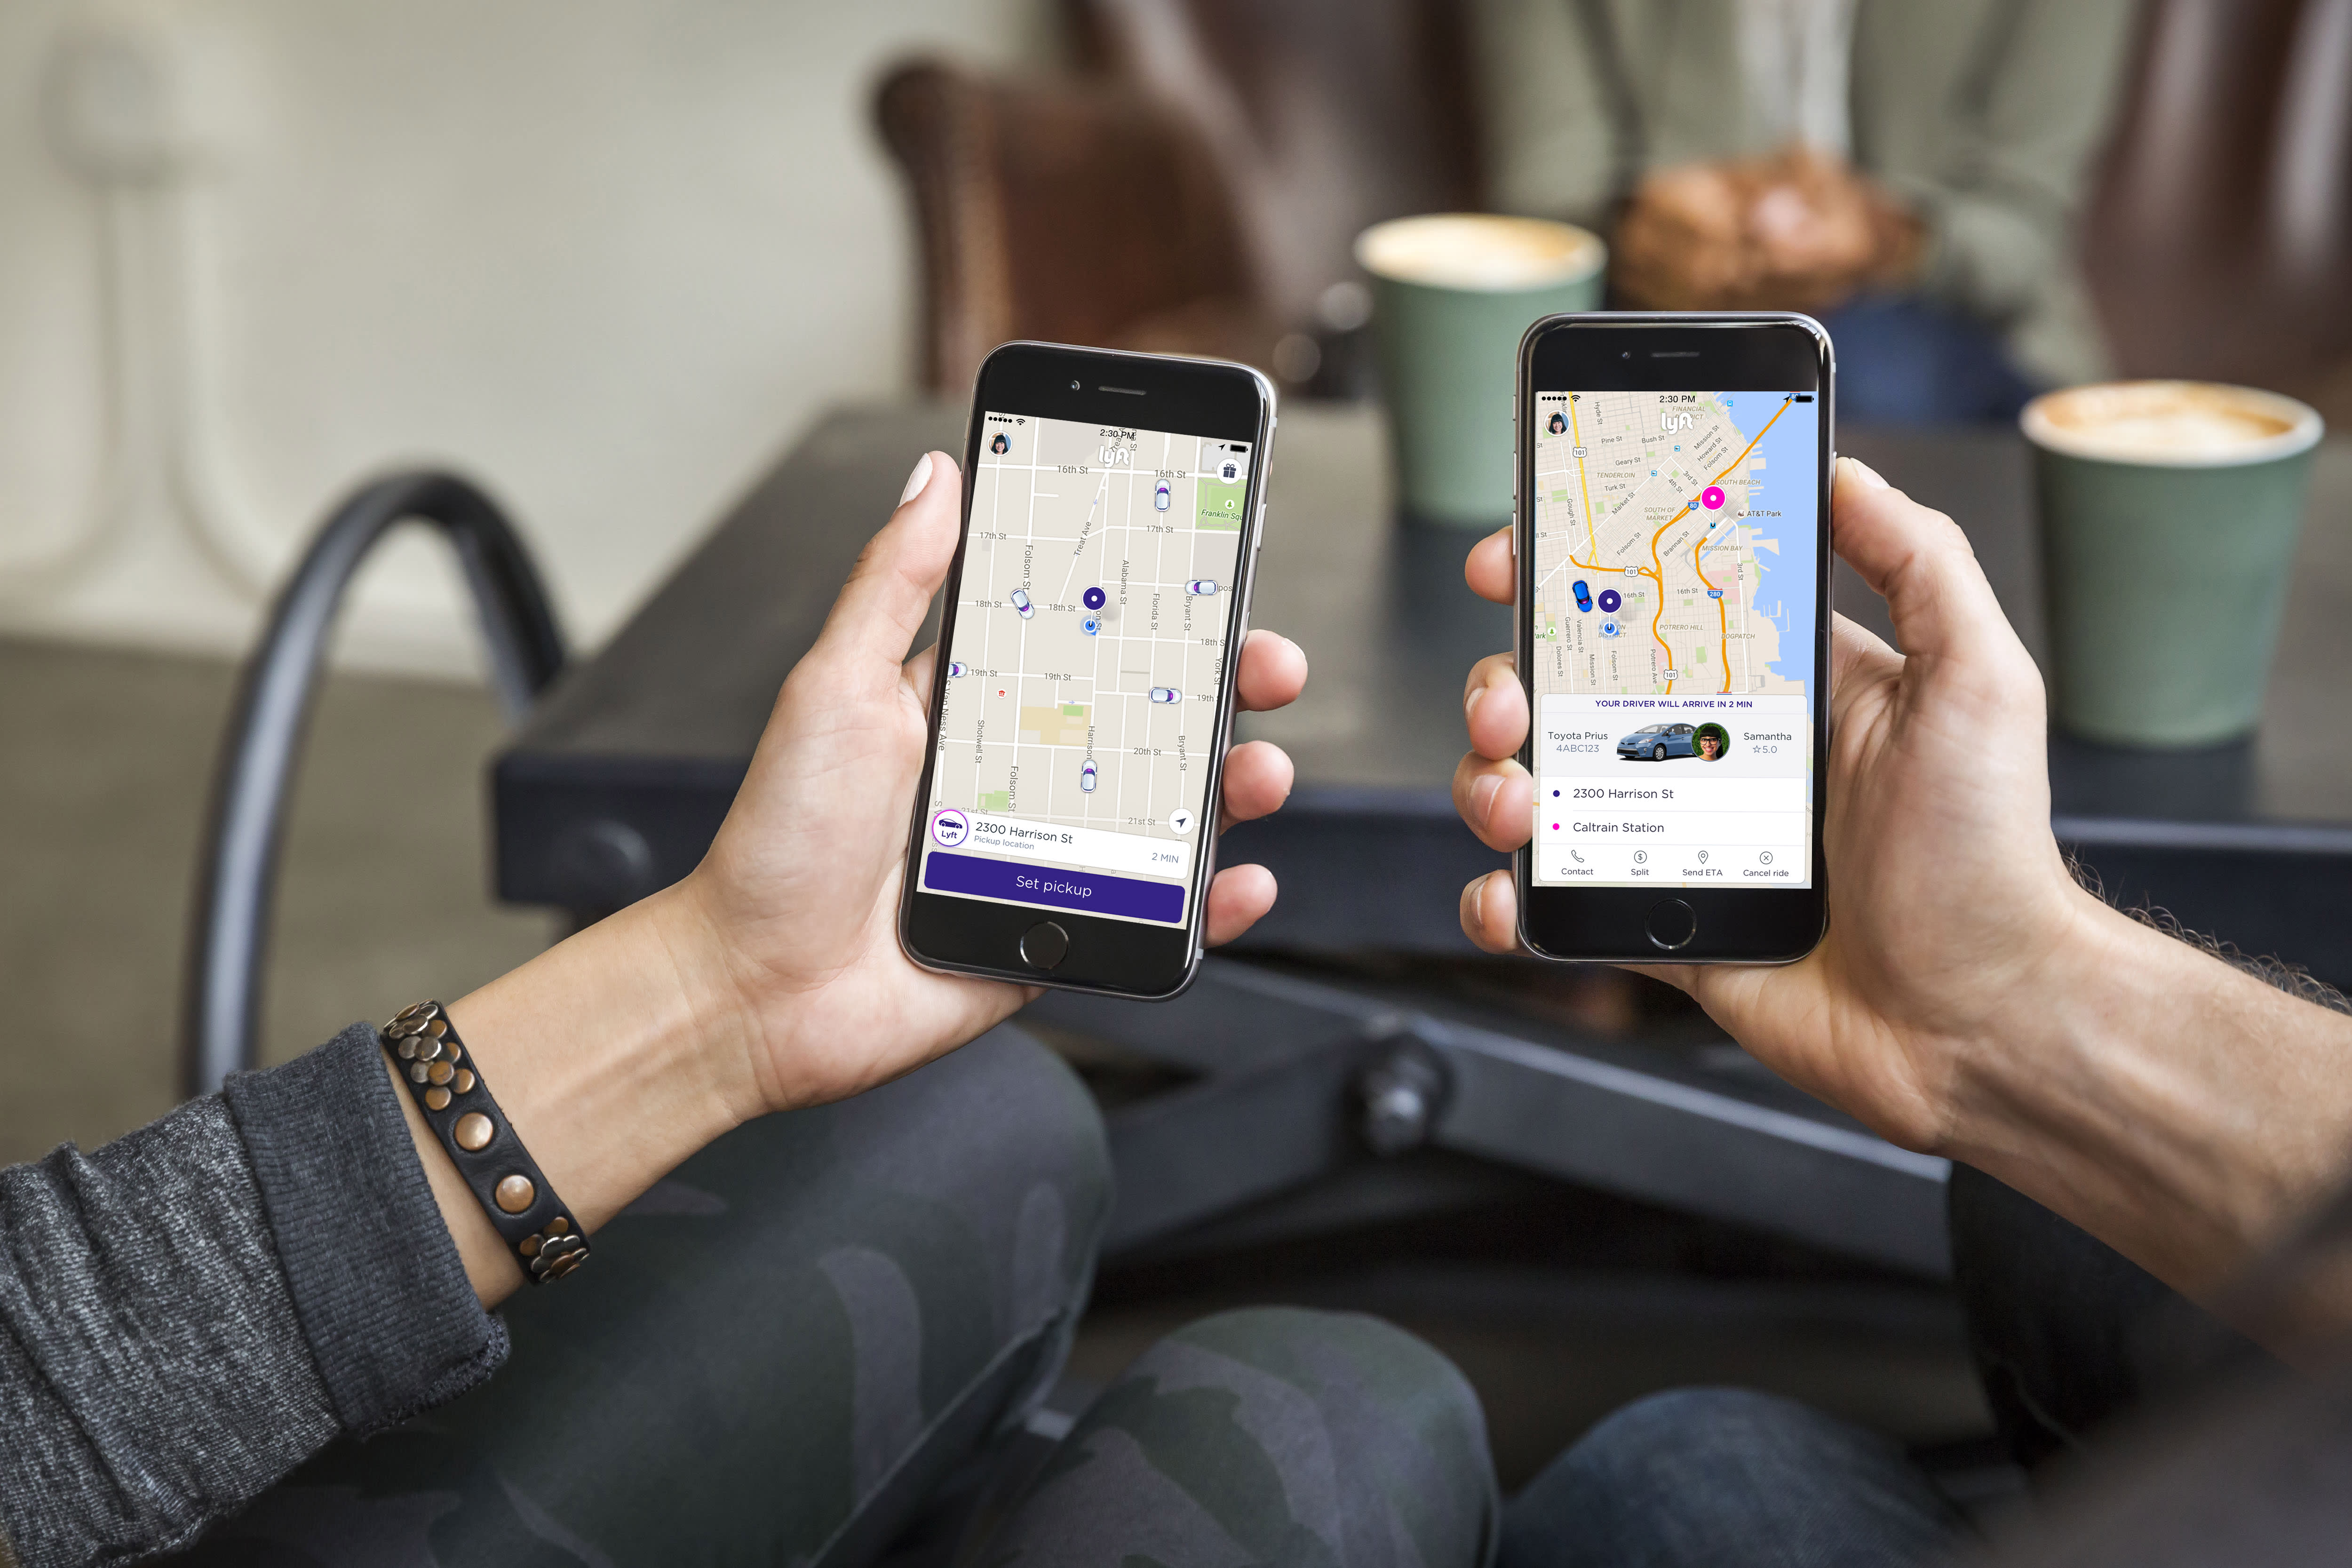 What services are currently offered by Lyft?